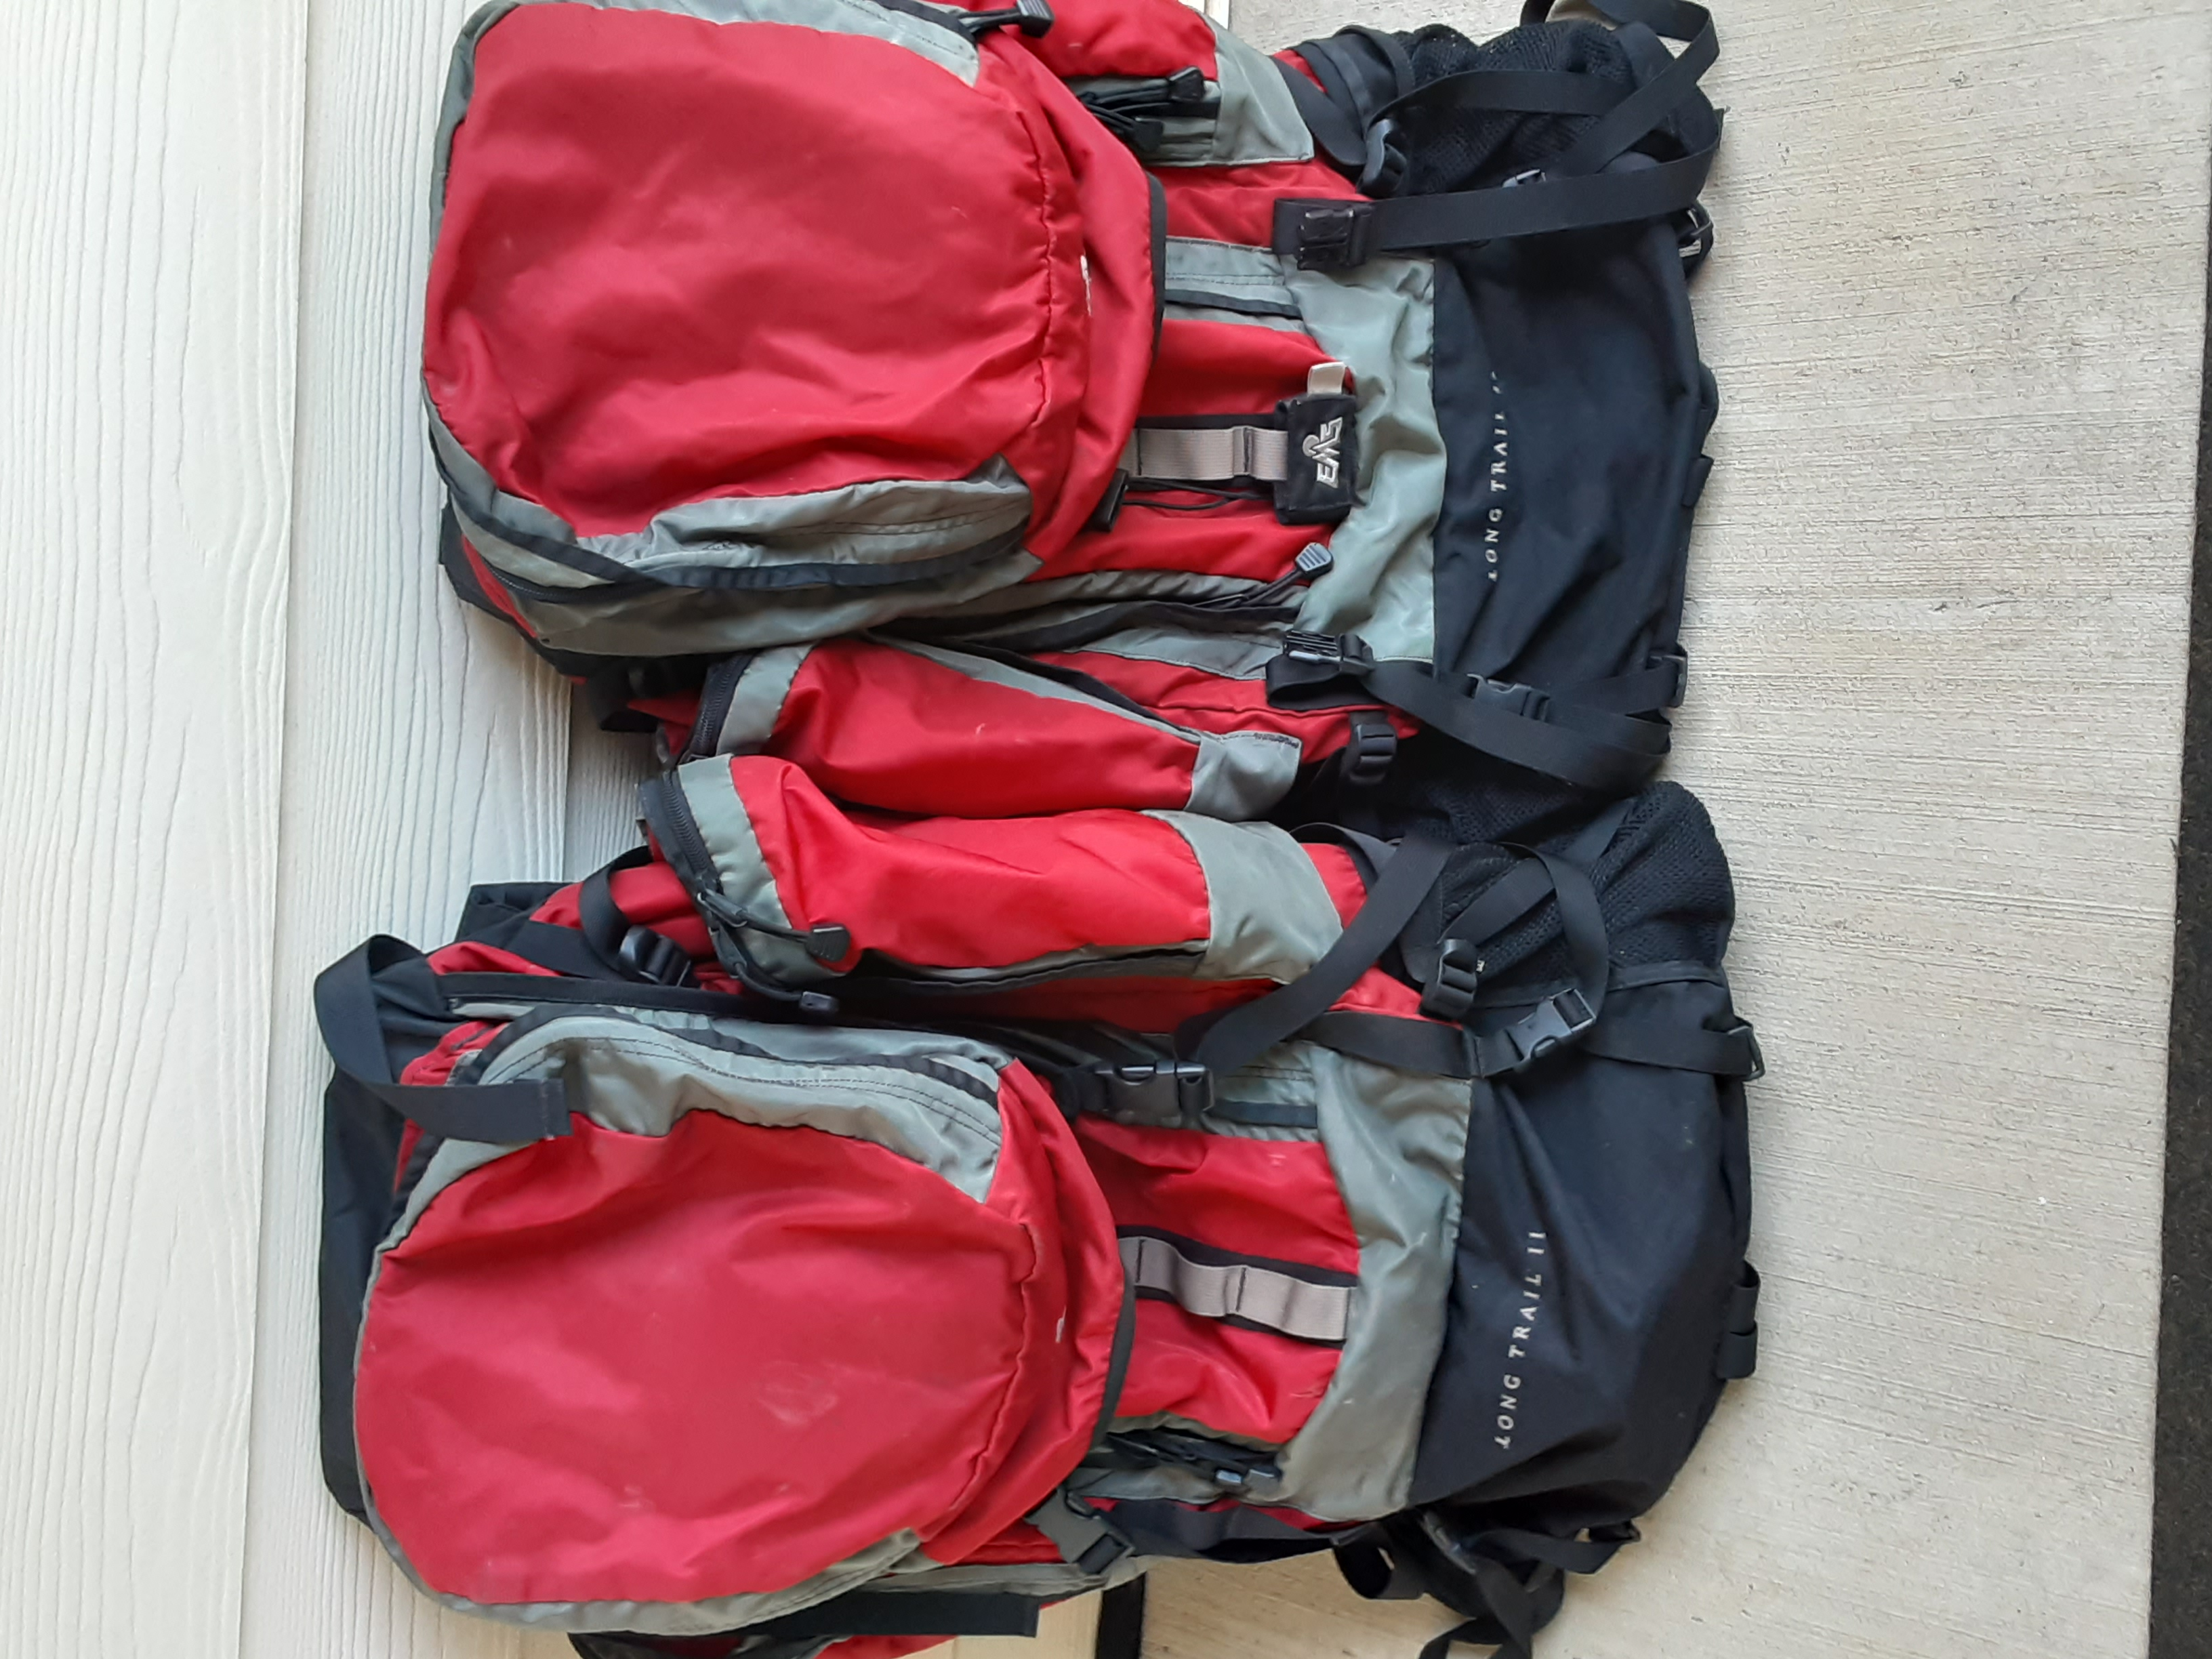 Eastern Mountain Sports (EMS) Expedition Backpack